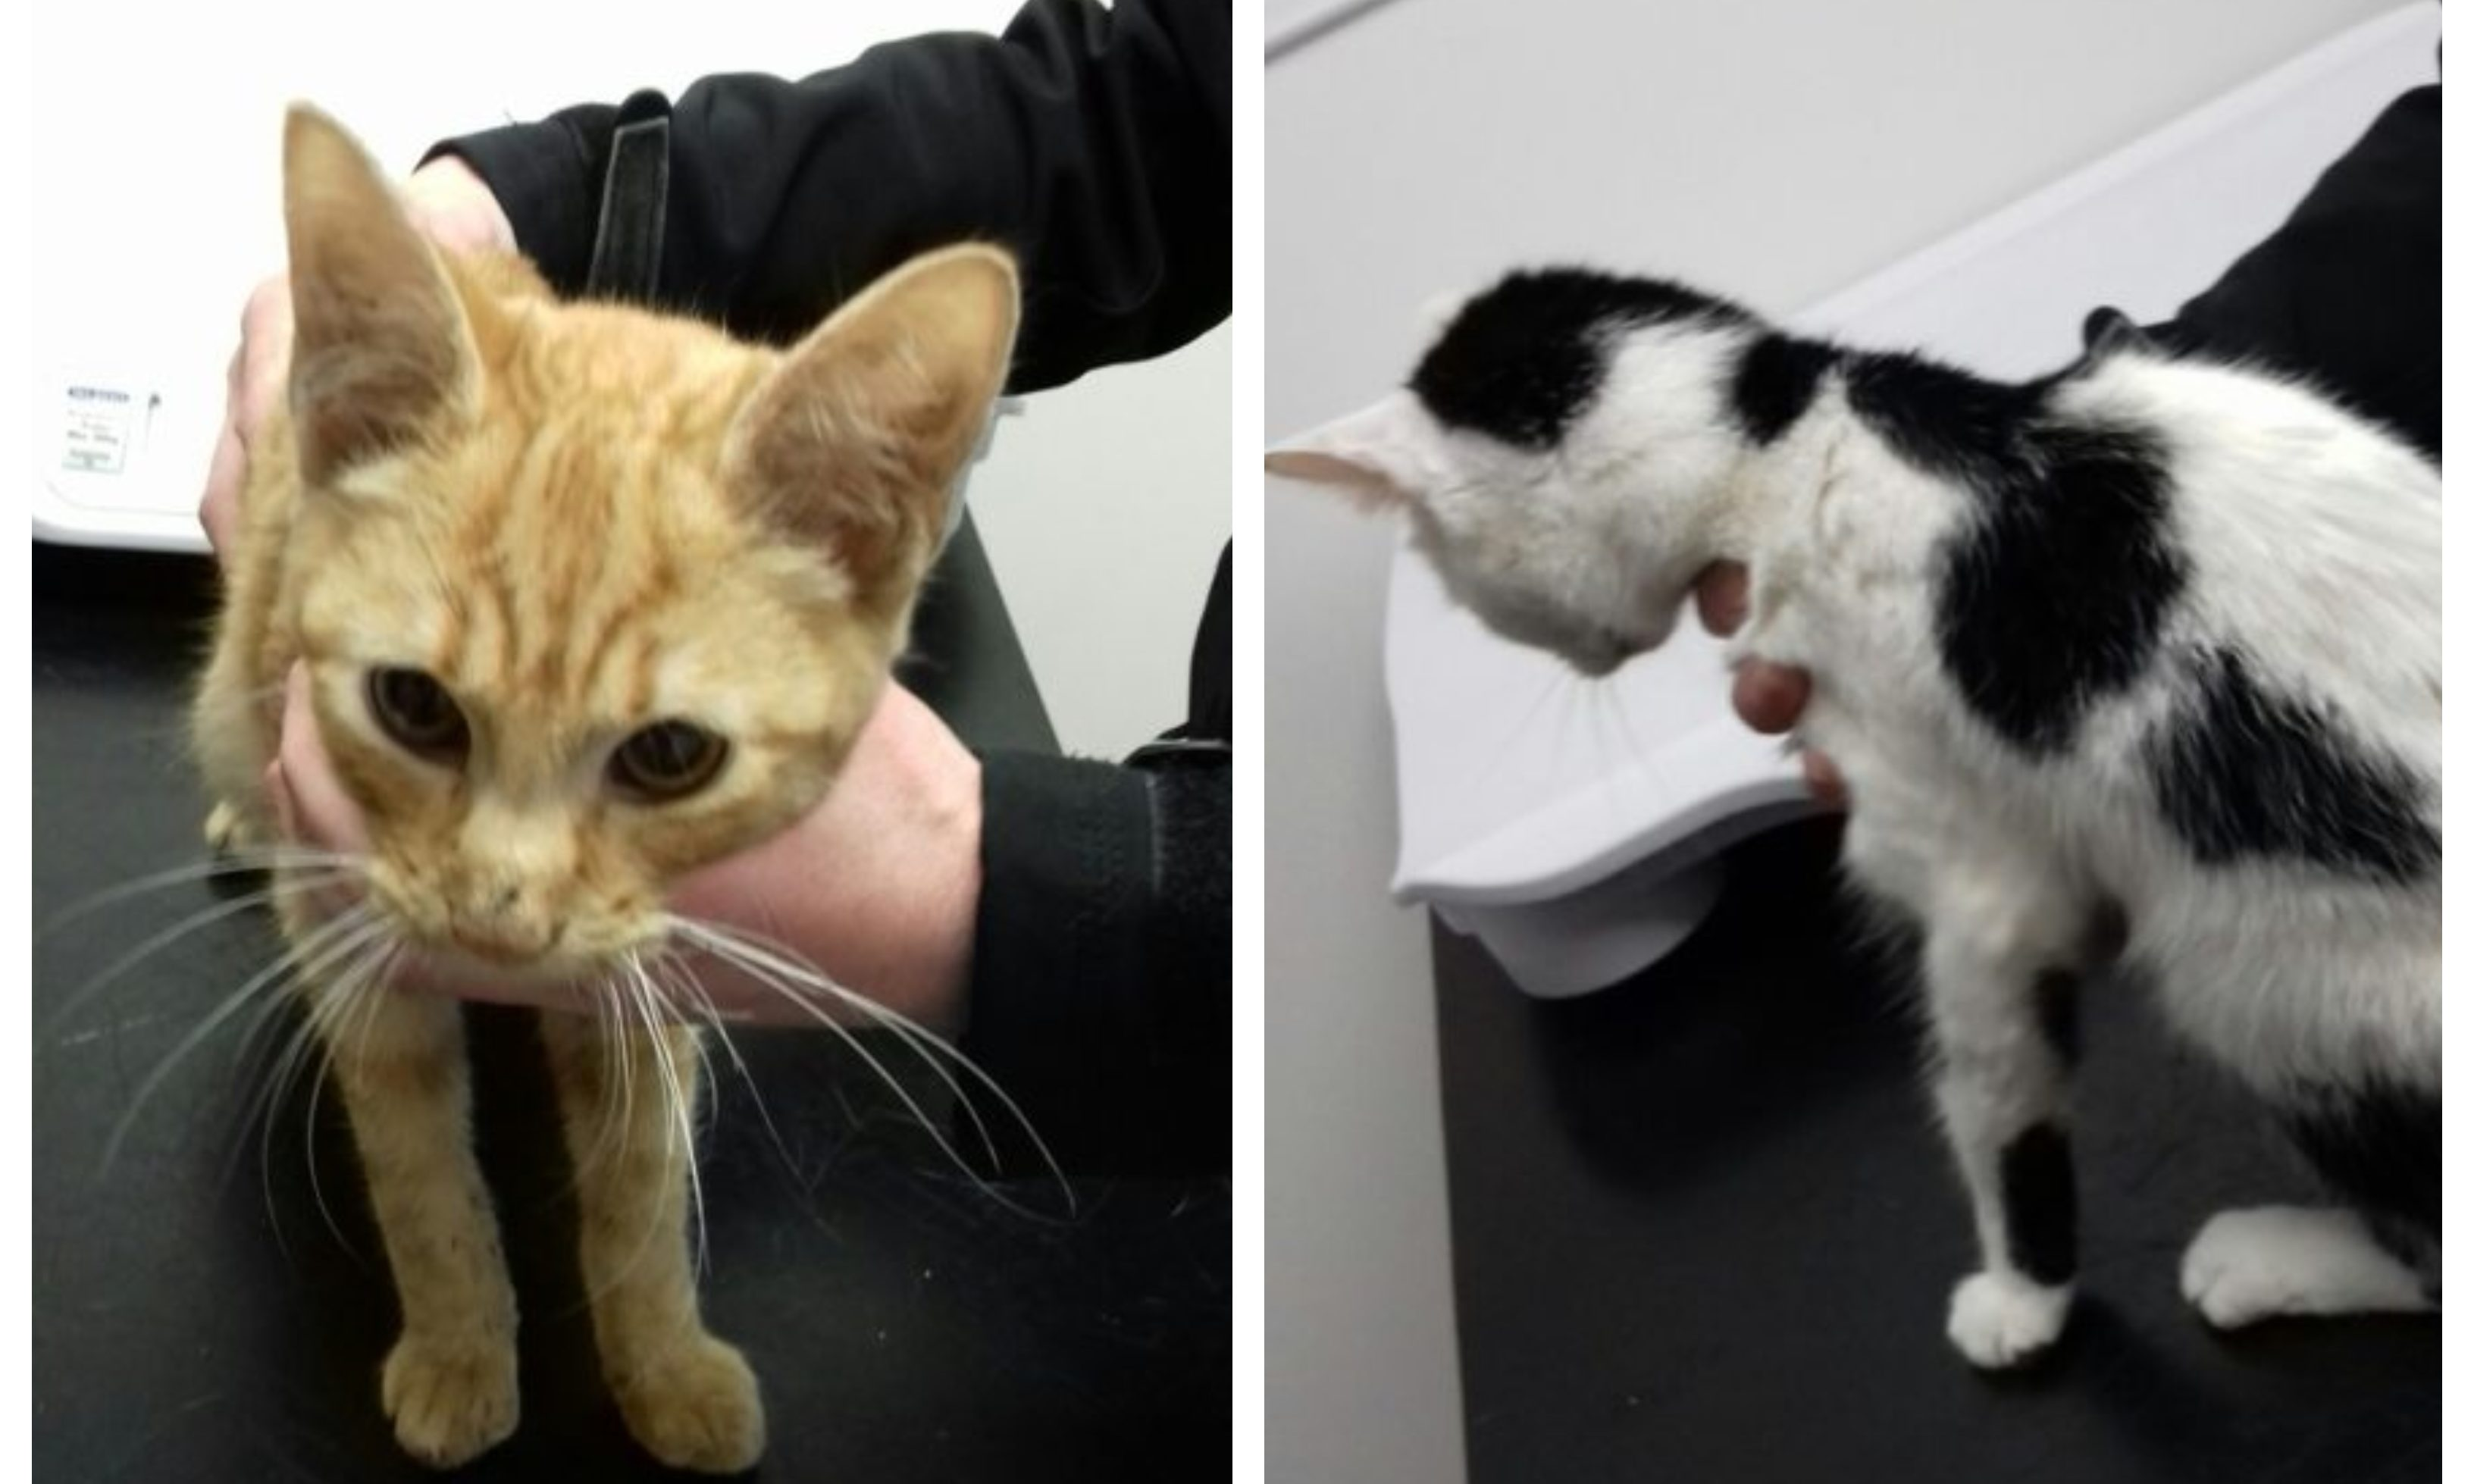 Paul Kyle, of Ballingry, admitted causing unnecessary suffering to his two cats.